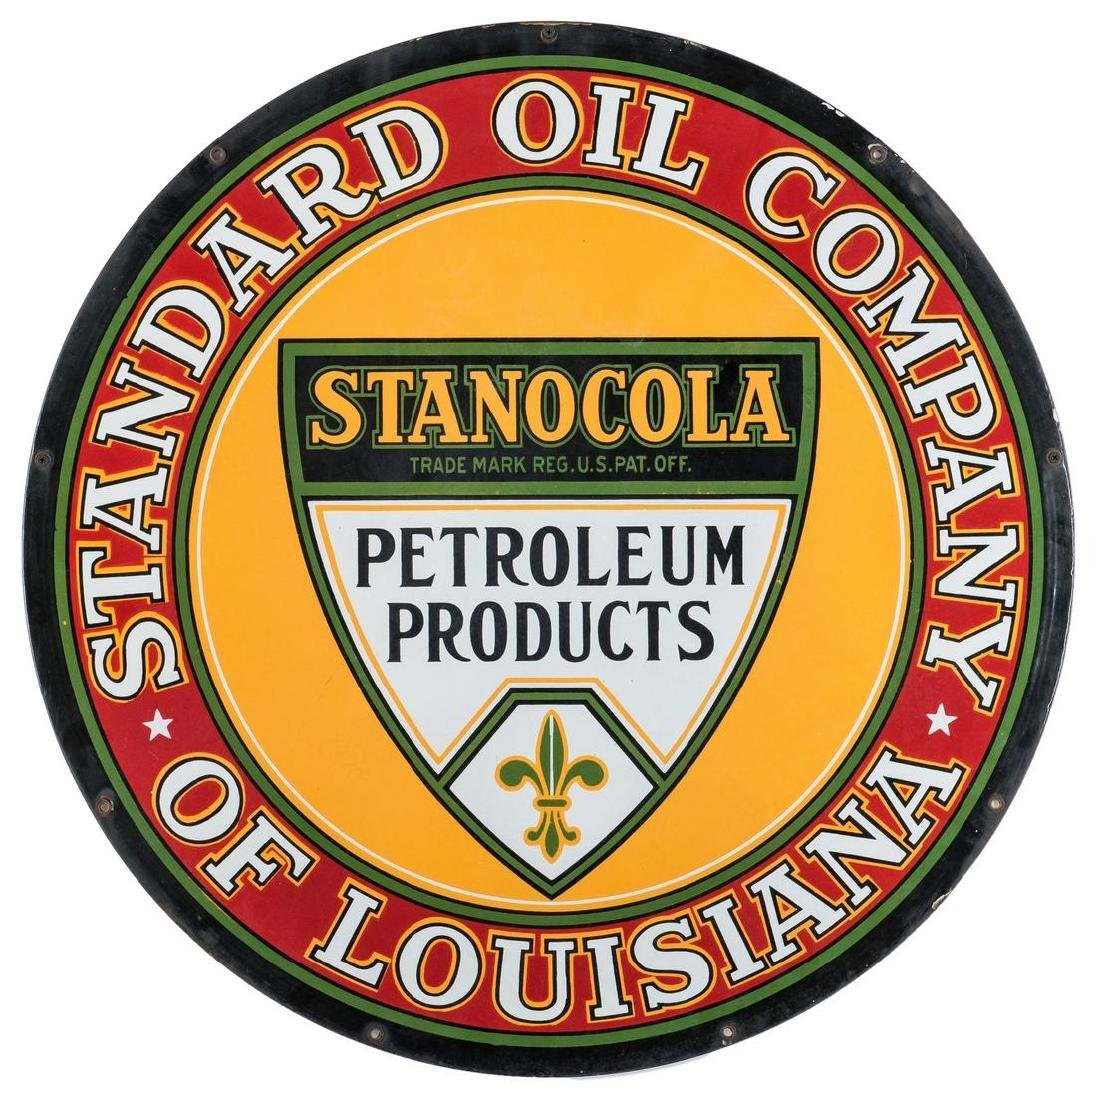 Stanocola Standard Oil Company Enameled Advertising